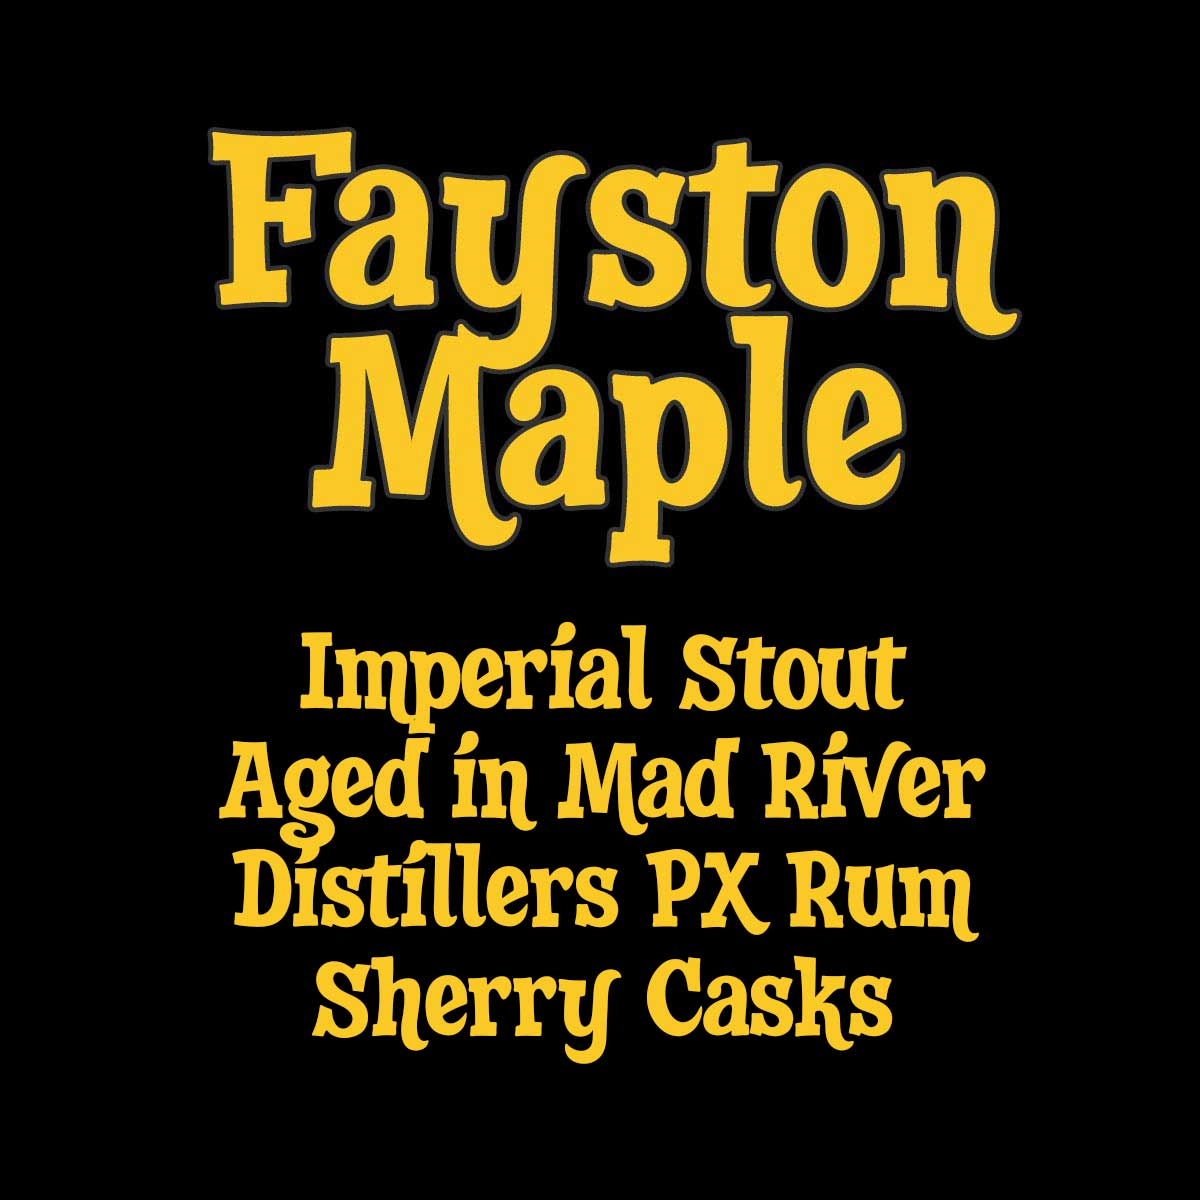 Fayston Maple Imperial Stout Aged in Mad River Distillers PX Rum Sherry Casks